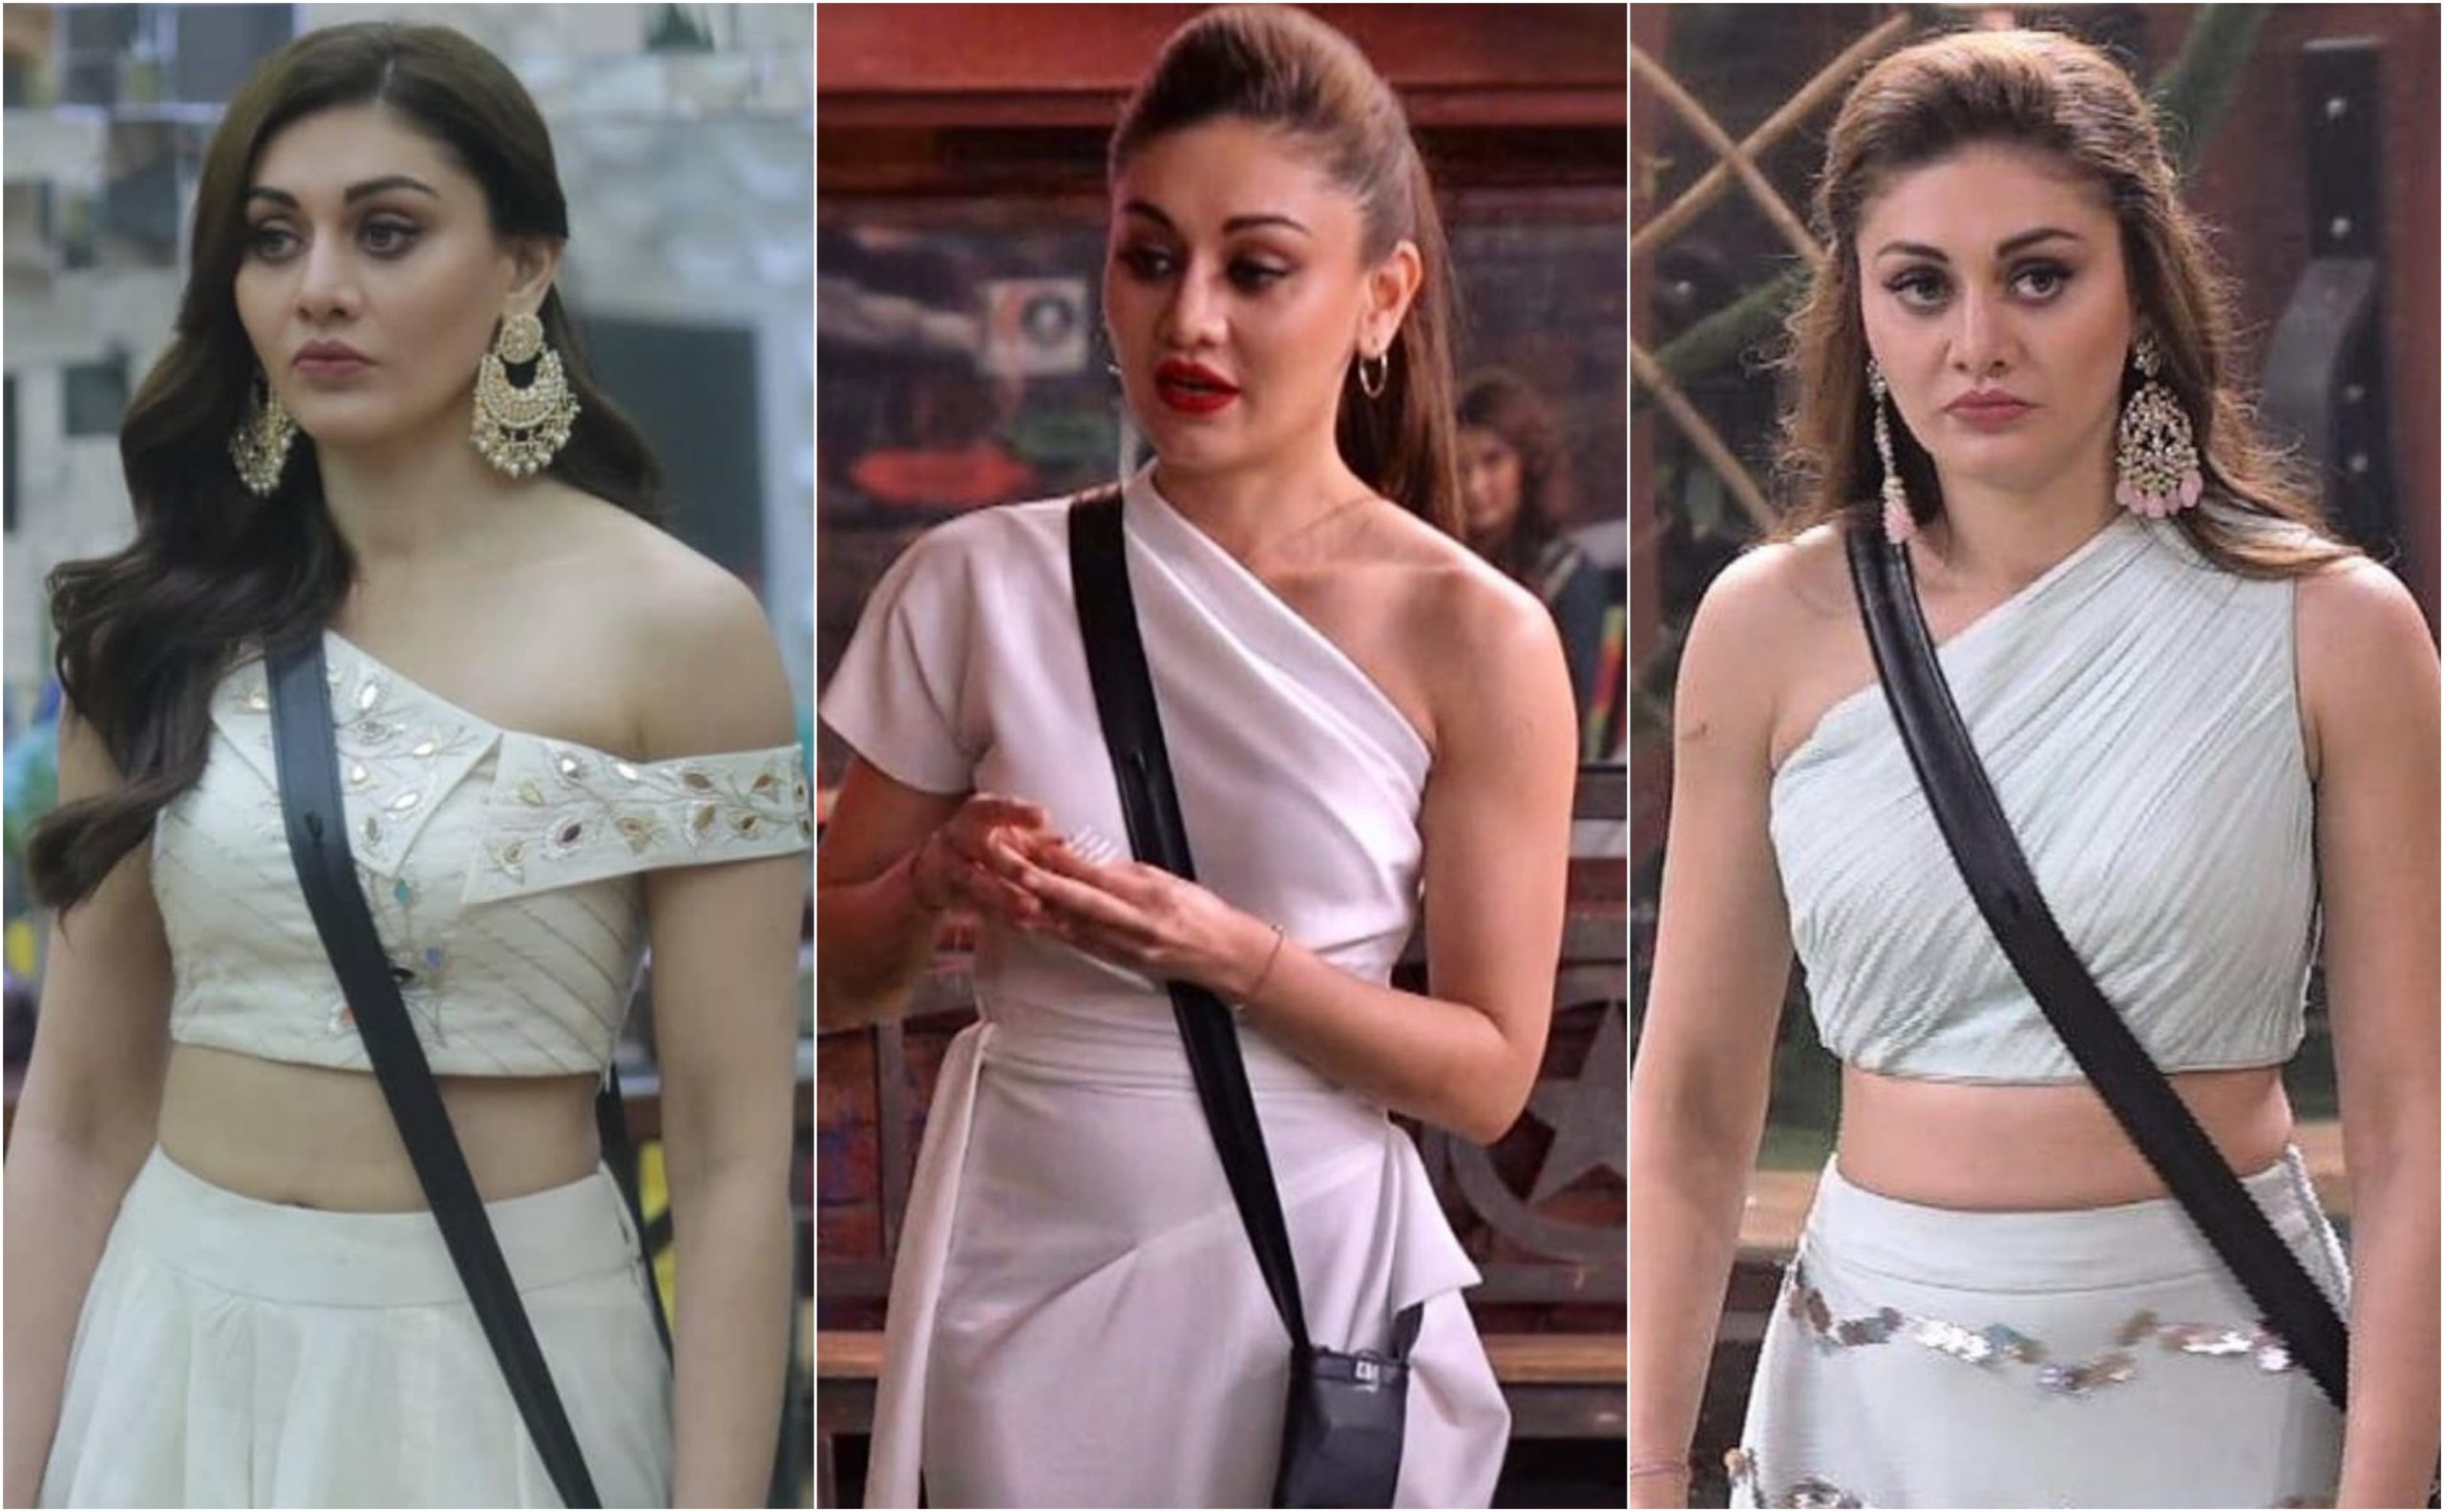 Still Looking For A Holi Outfit? Shefali Jariwala's These 3 All-White Outfits Can Be Your Inspiration